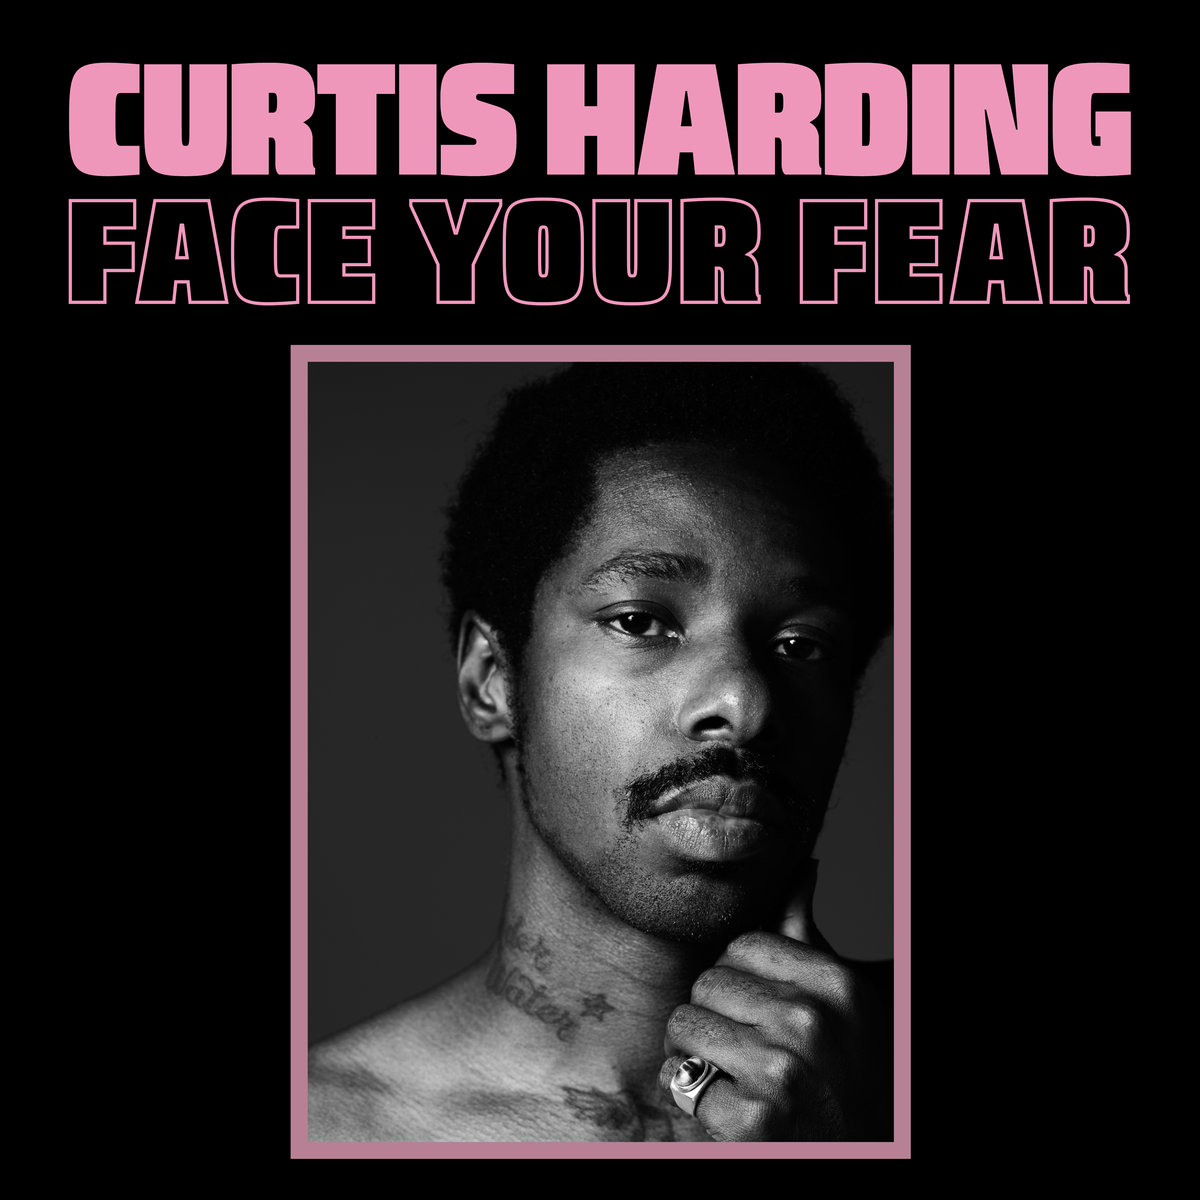 "Face Your Fear  Curtis Harding   Hot Takes:   ""There's nothing 'neo' about it: It's clear that Harding is mining a deep tradition of soul music in a way that very few modern artists can, even when Danger Mouse's production overshadows the true beauty of these songs"" -  Kevin      ""Sometimes an artist's growth is imperceptible to even the most attuned ear. However, on Curtis Harding's latest, his artistic evolution is palpable, and the star of the show. Intriguingly enough, people would tell you that his mega producer sonic guide here Danger Mouse should be the big highlight here. However, the former half of Gnarls Barkley actually hinders what is very likely to be Harding's certain progression to a uniquely defined superstar status."" -  Marcus K. Dowling    LINKS   Official Site   Facebook   Twitter   Instagram    LISTEN ON   Spotify   Apple Music"